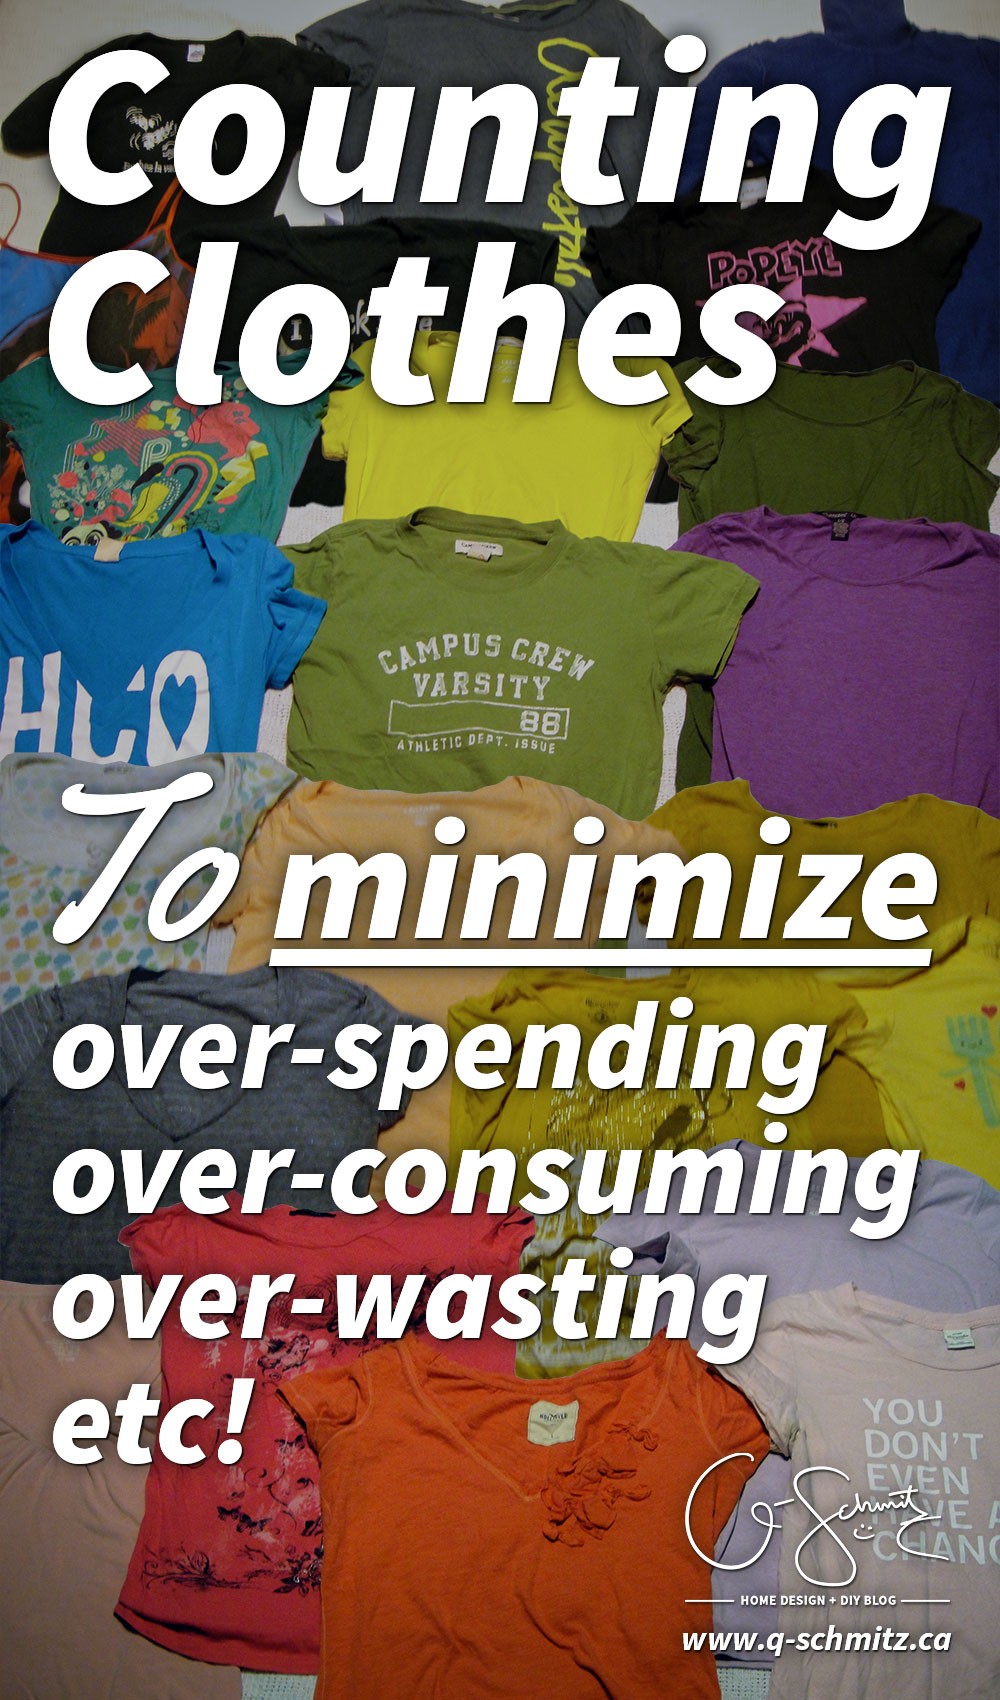 I challenge you to count all the clothing and accessories you have right now! Get perspective on the items in your home that are preventing you from being better organized.